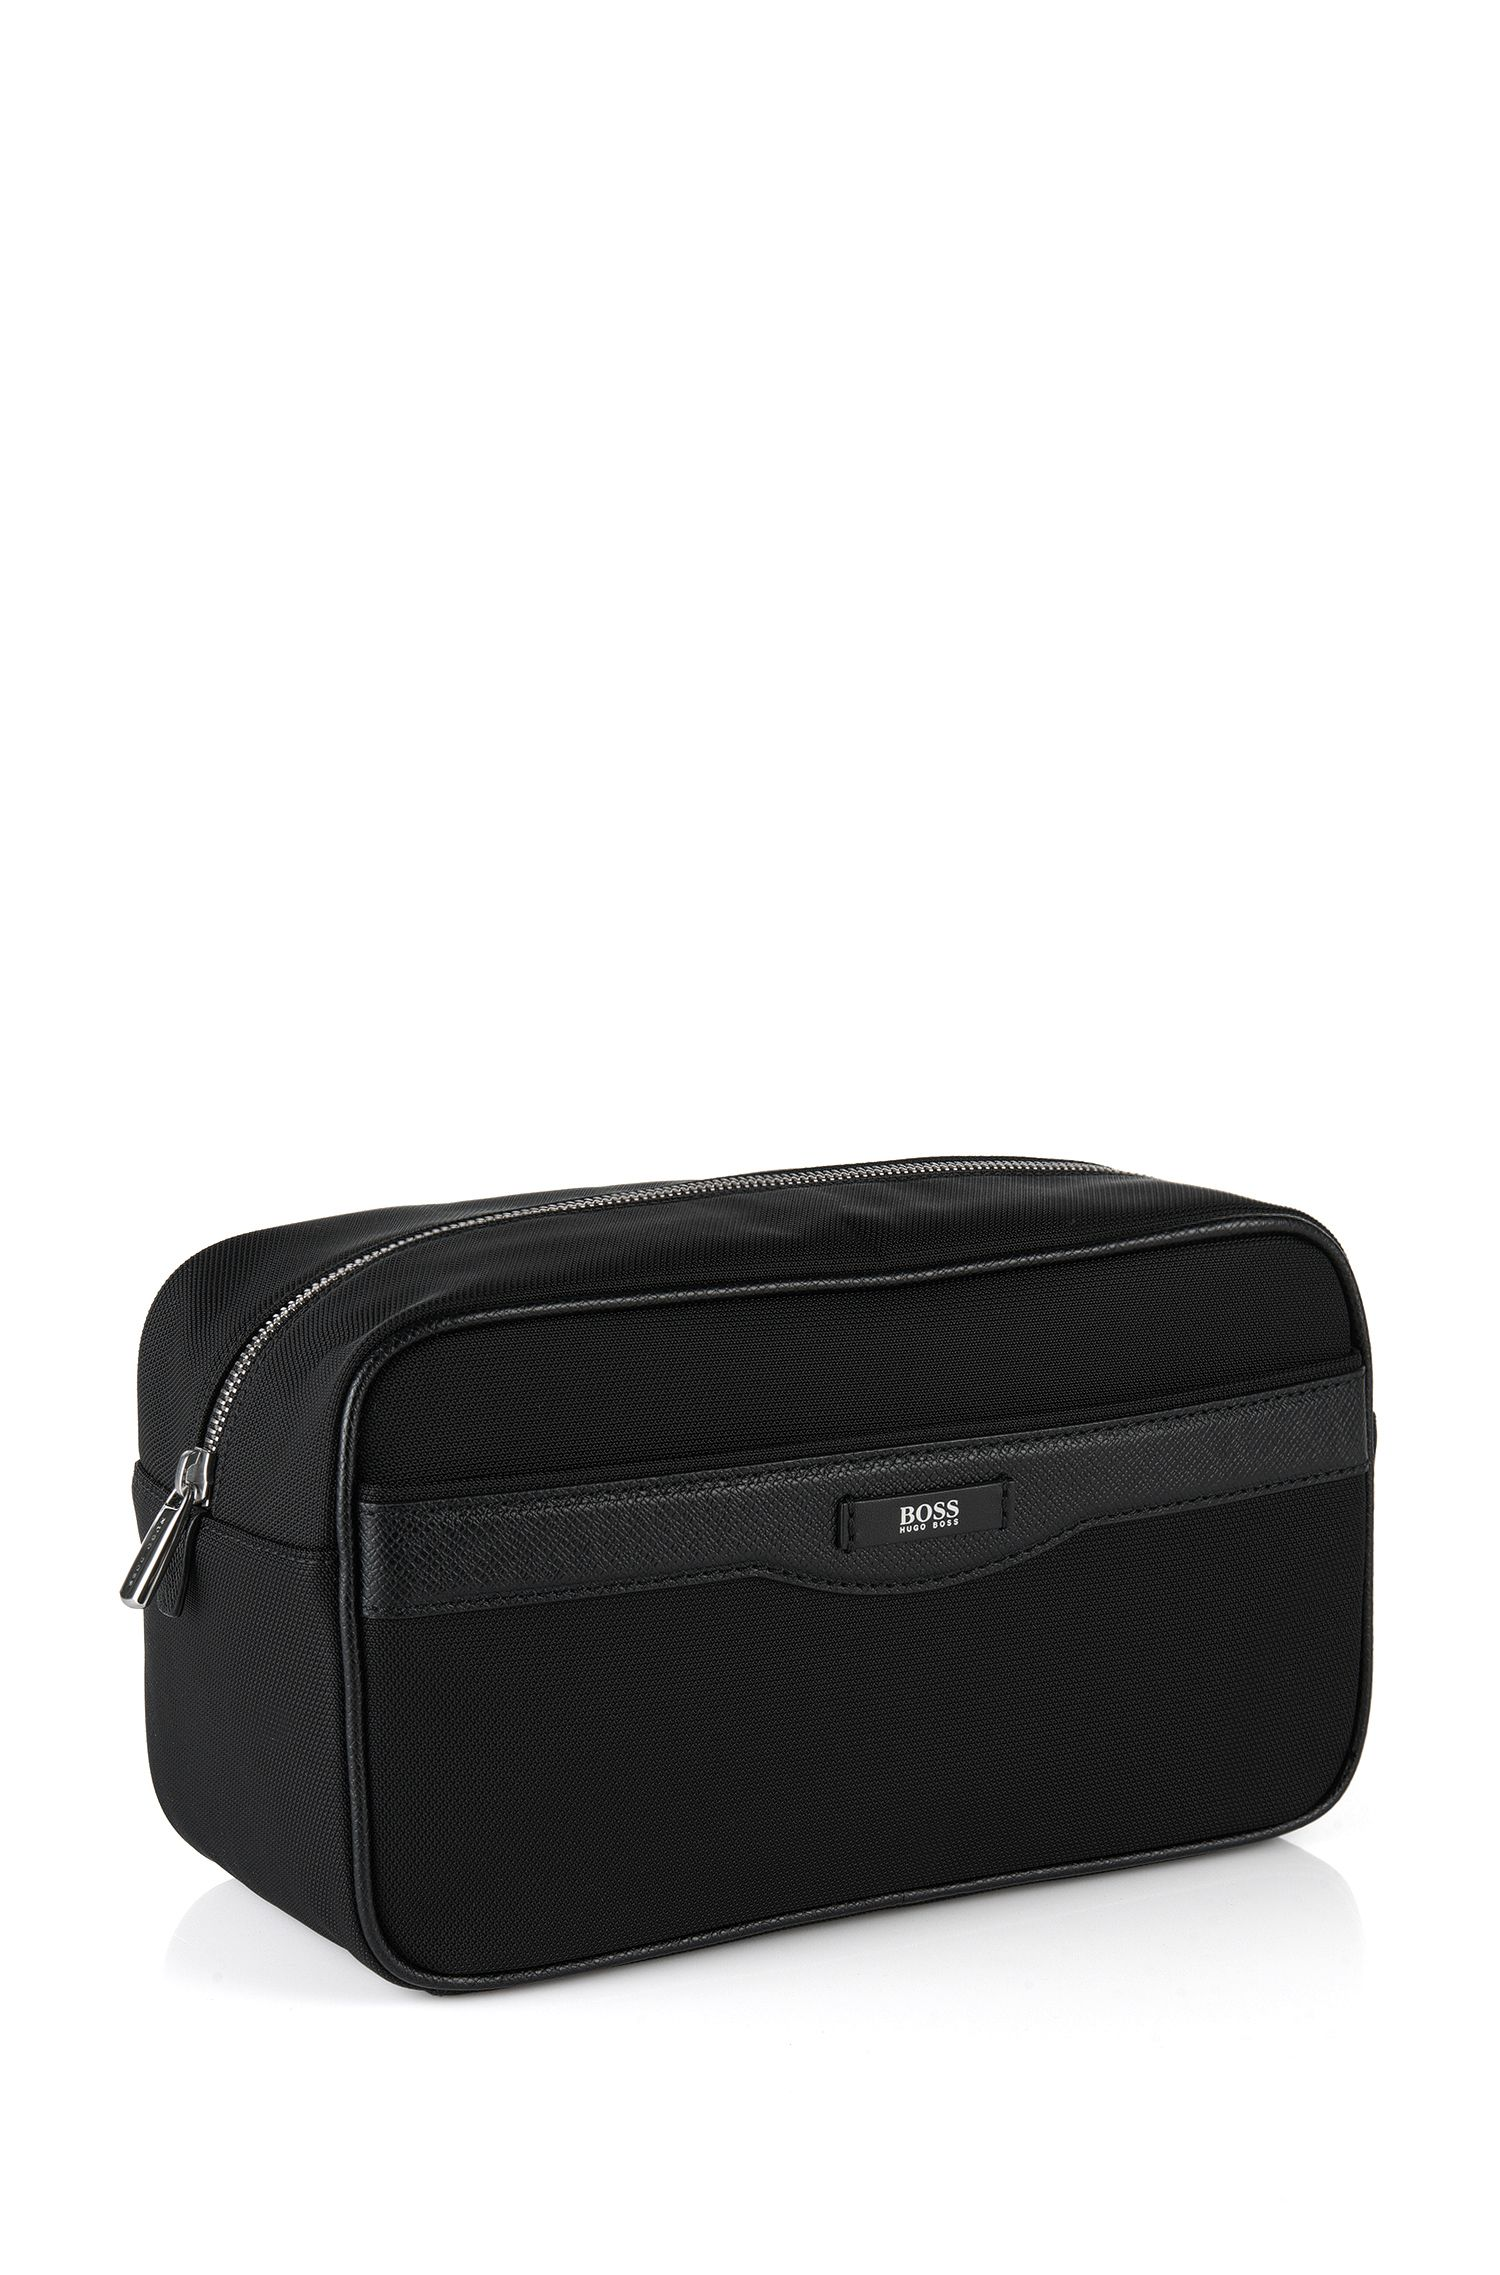 Signature Collection washbag with leather trims